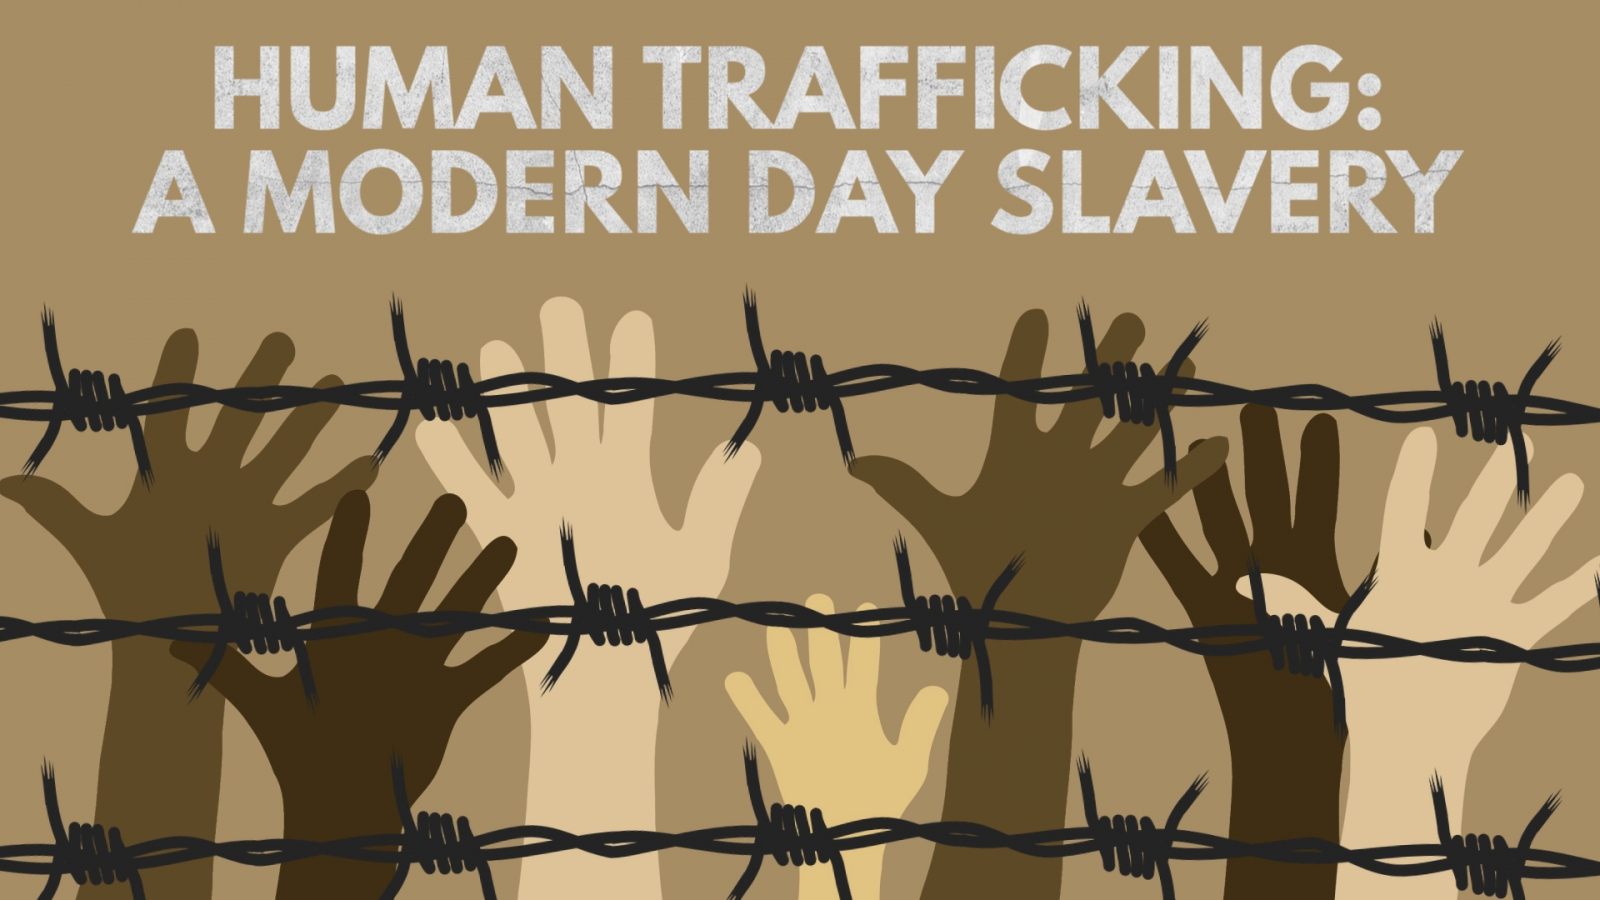 Human trafficking: A modern day slavery